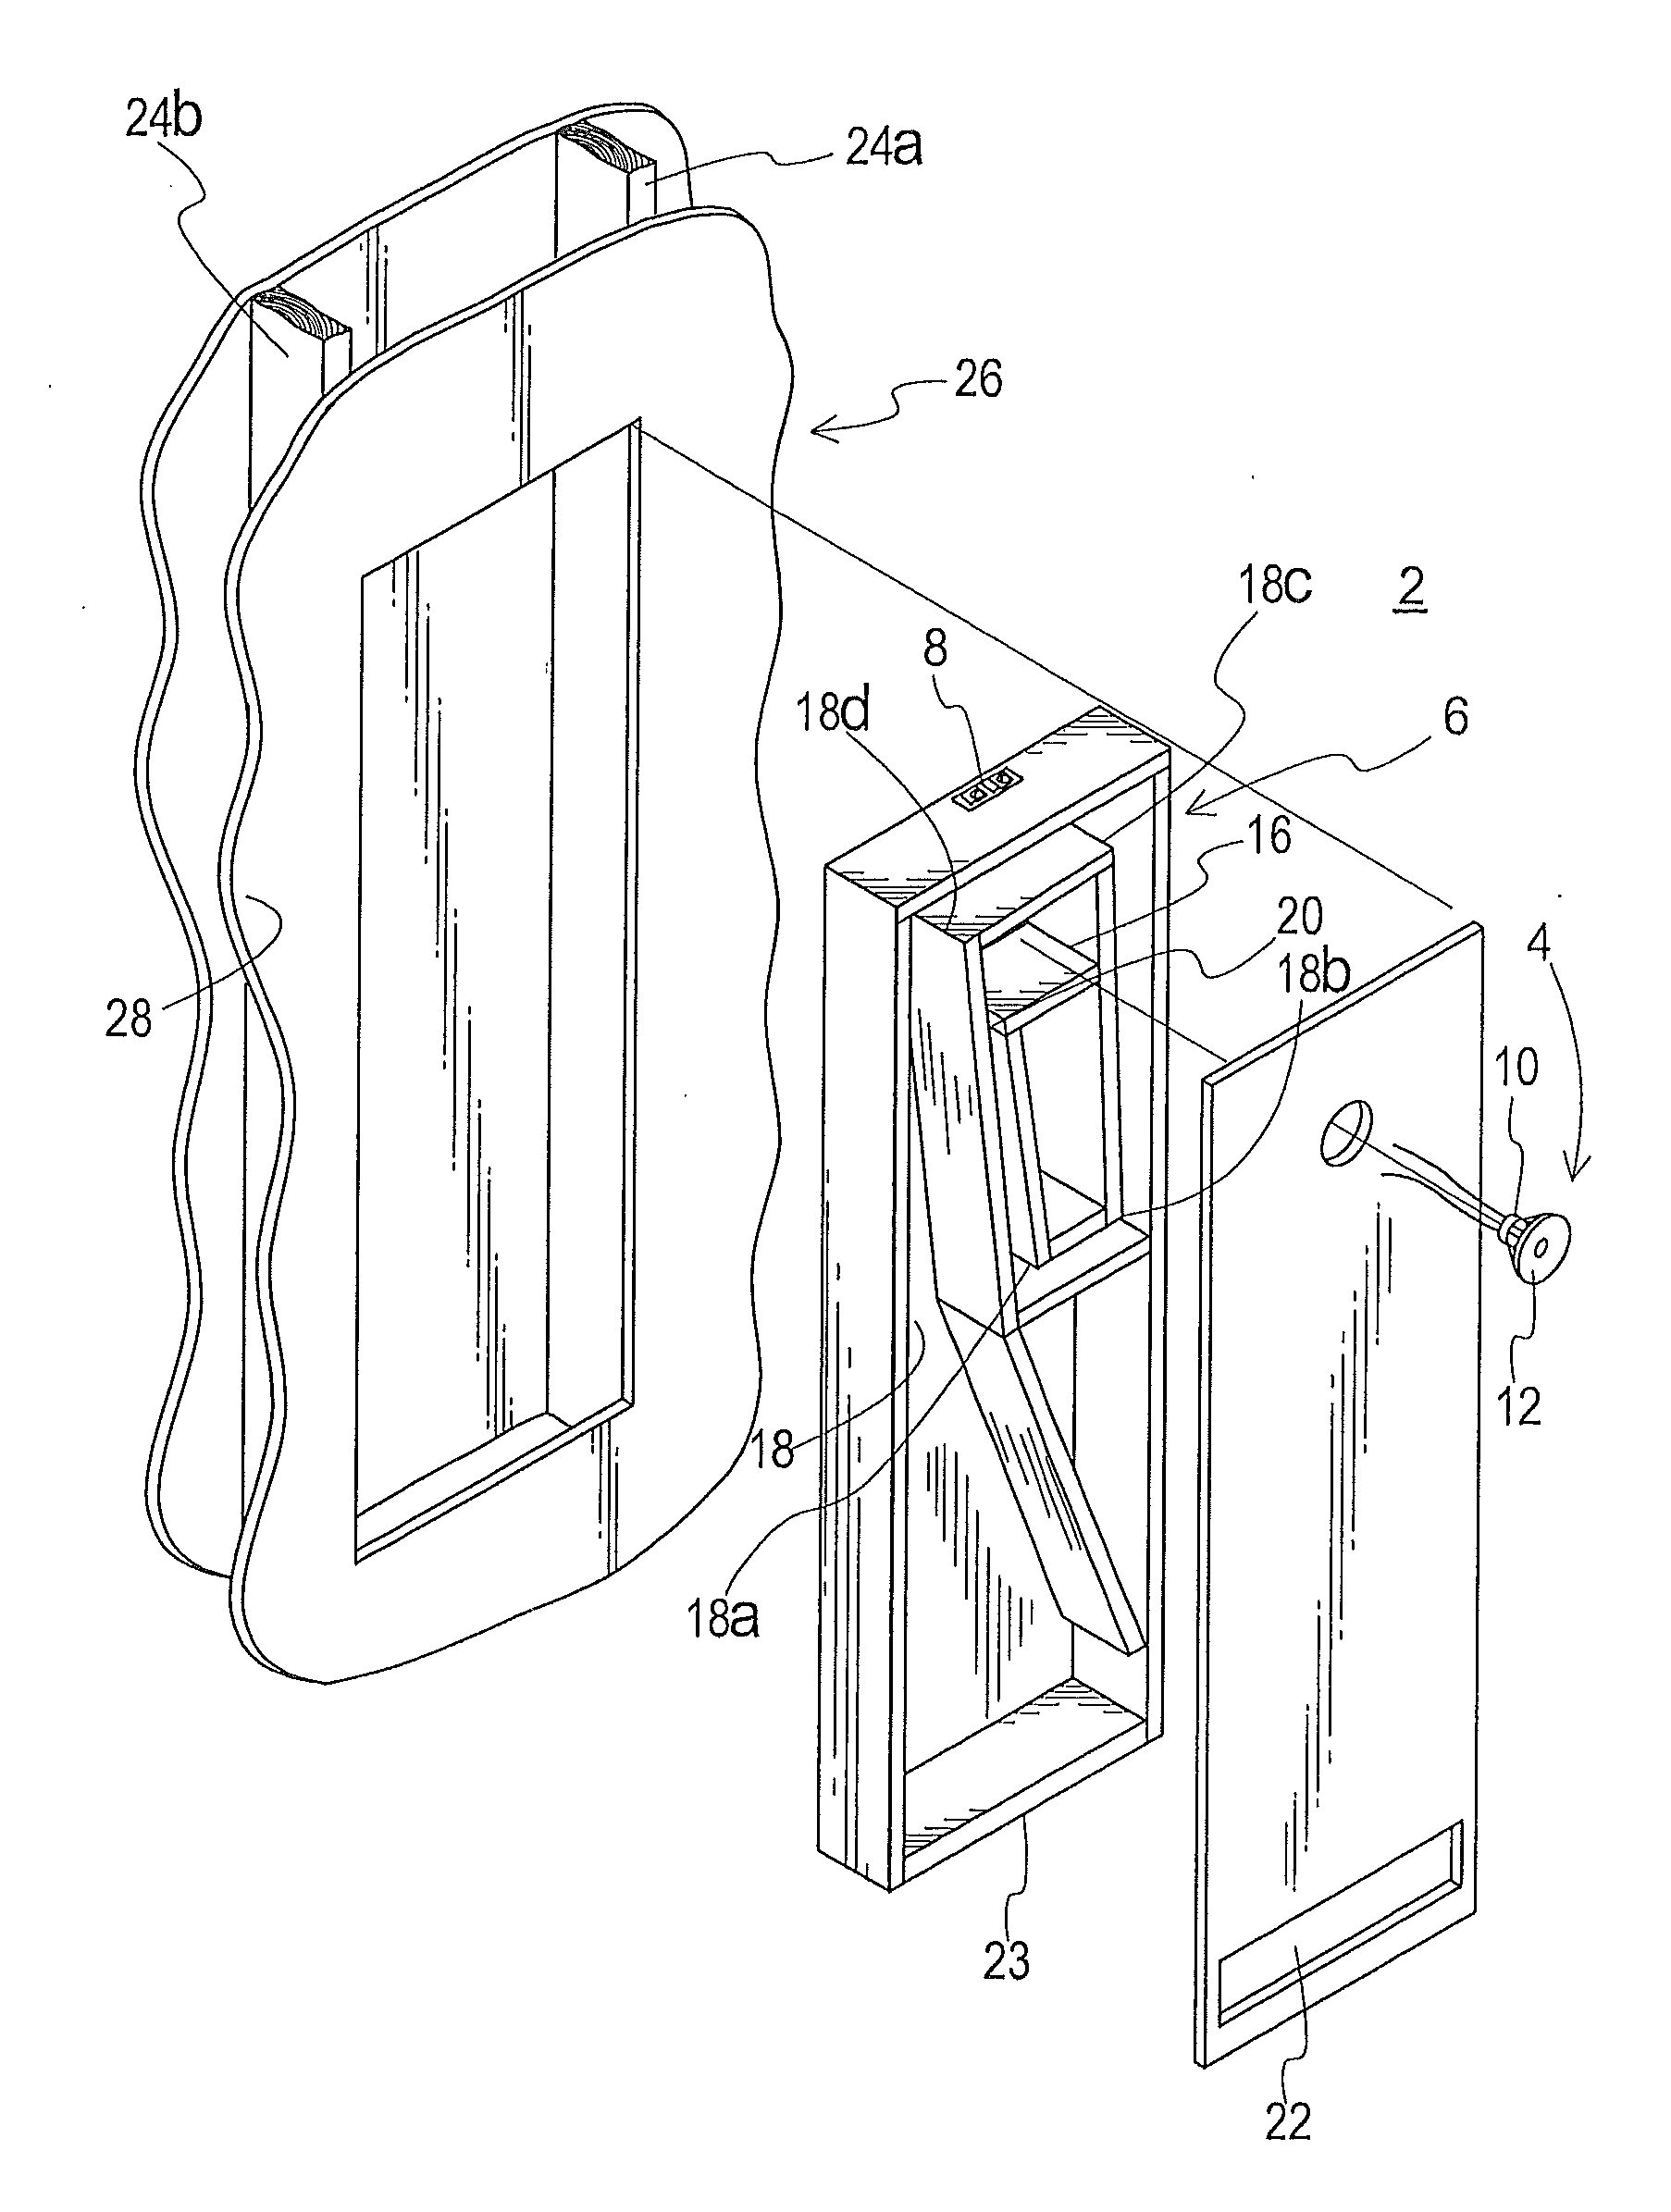 patent us20120061174 - acoustic system